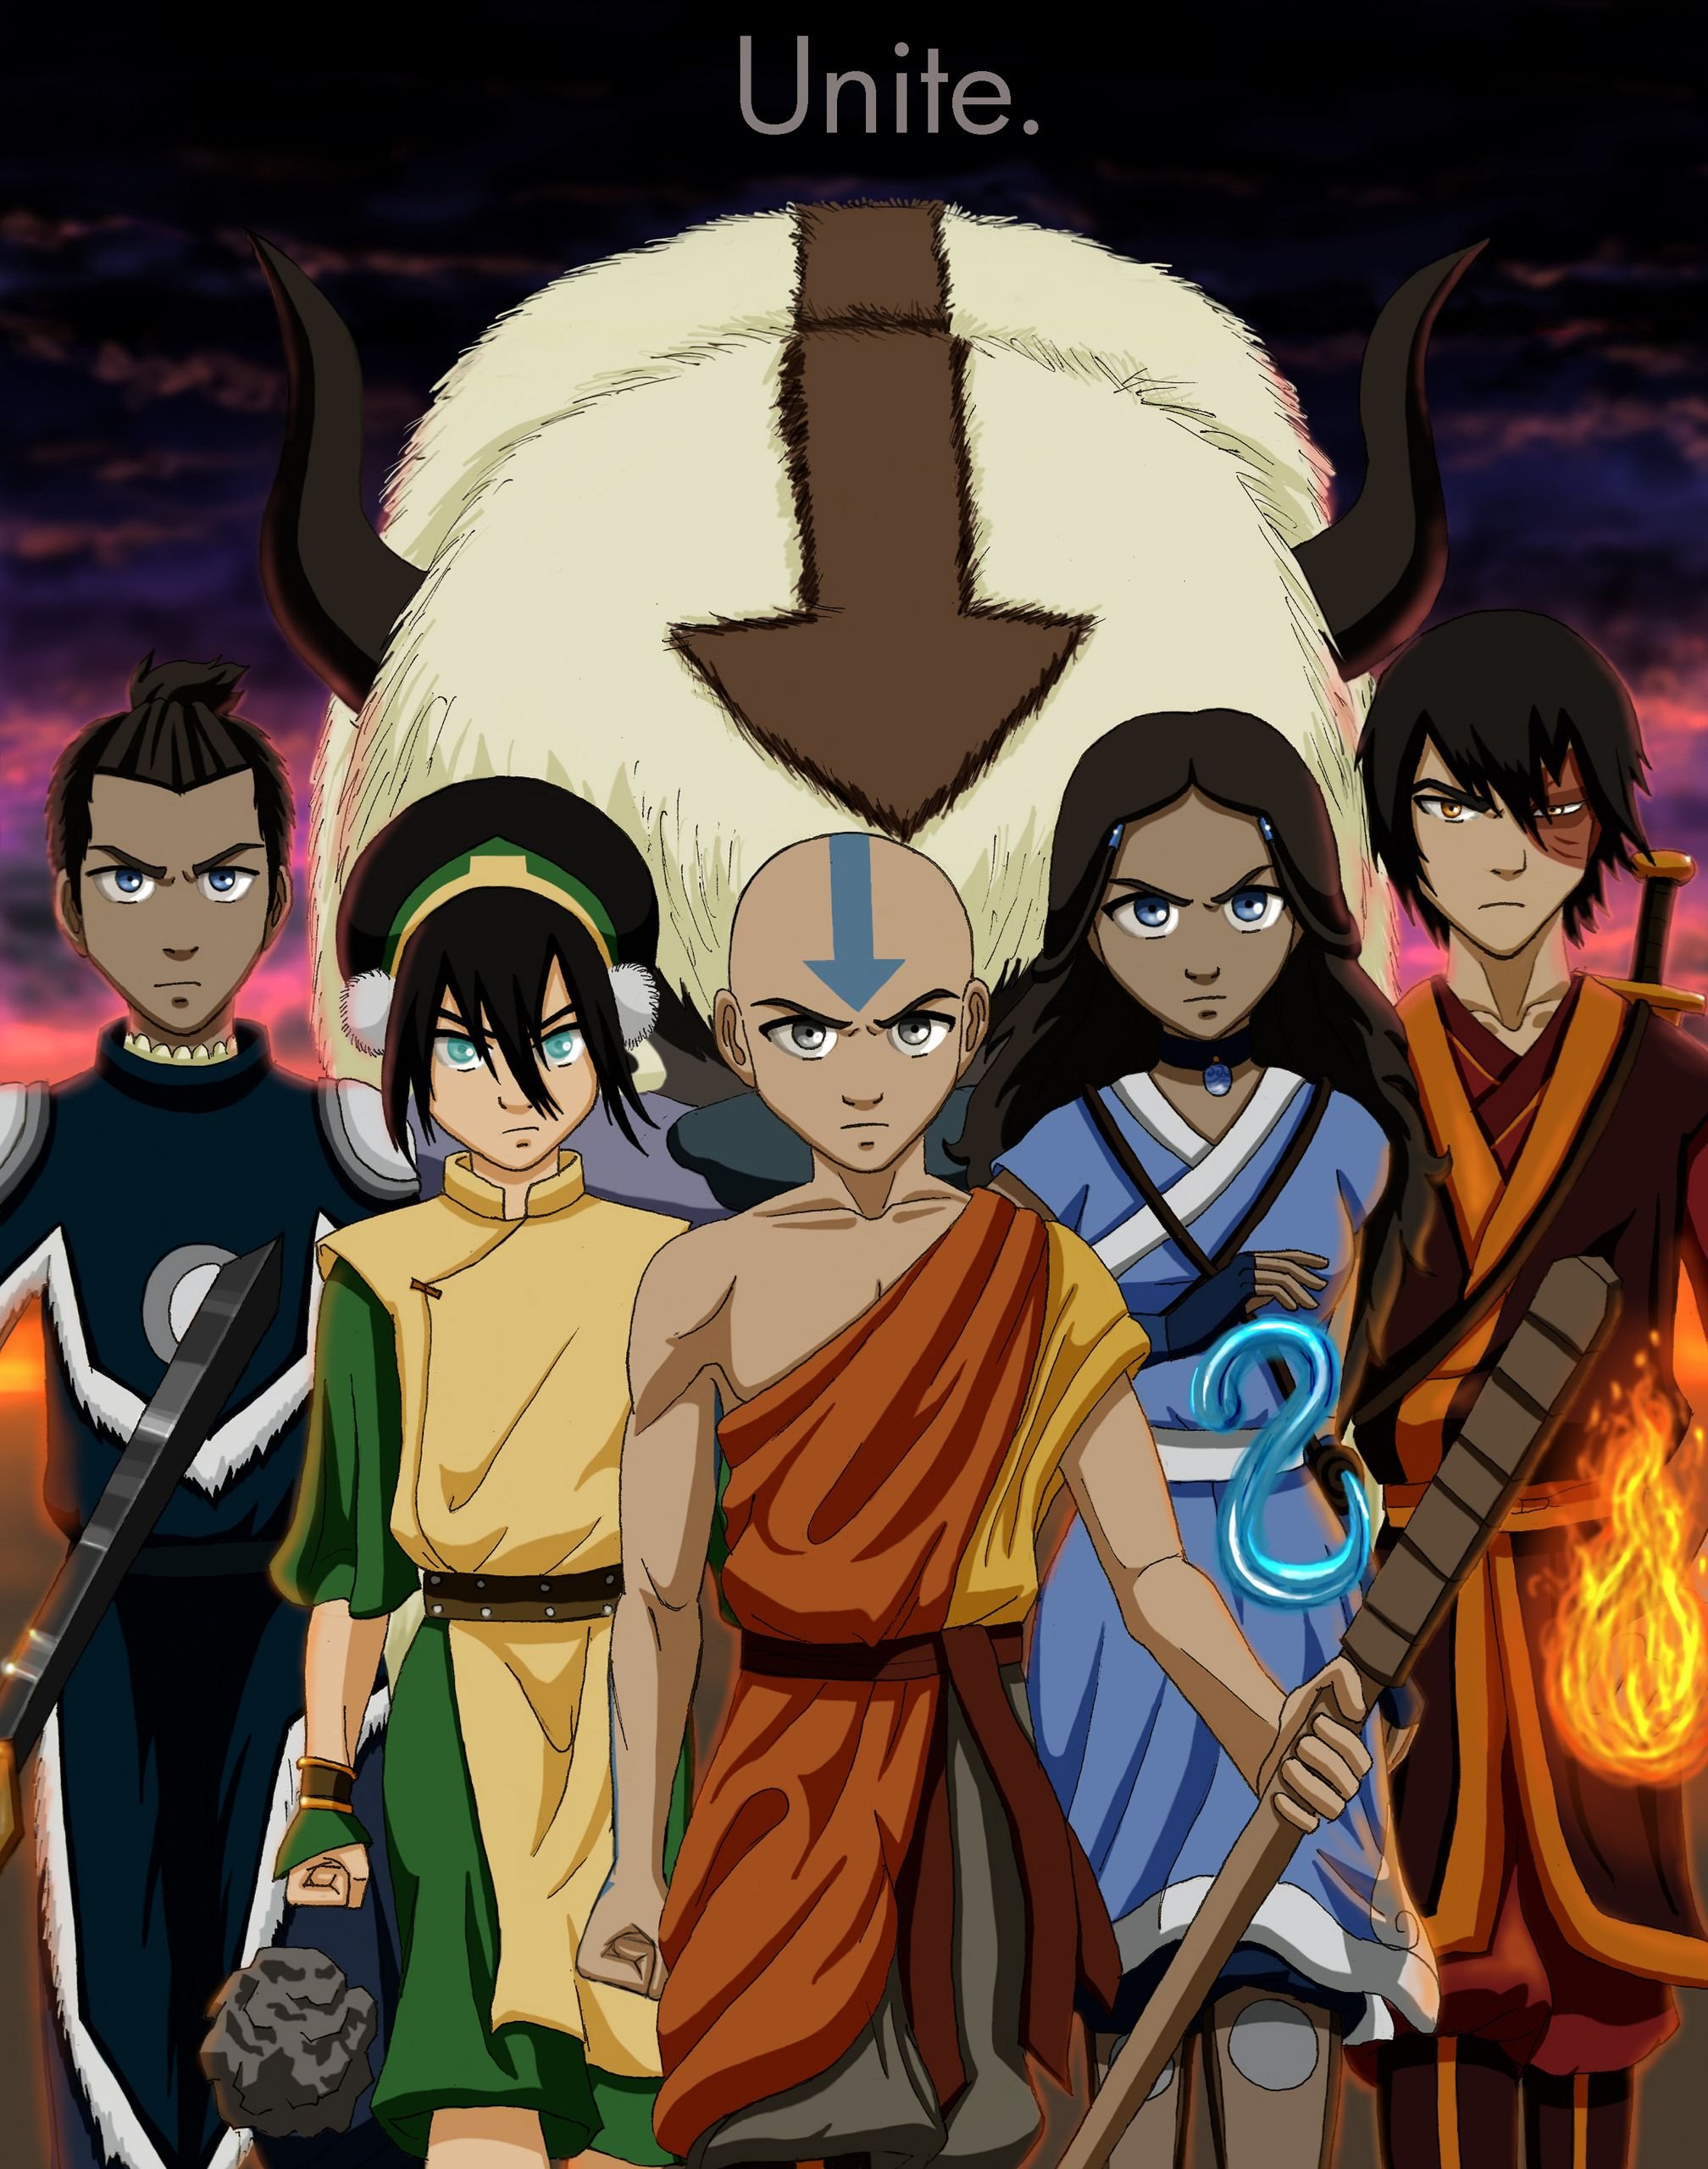 The Gaang (Sokka, Toph, Aang, Katara, Zuko) Avatar The